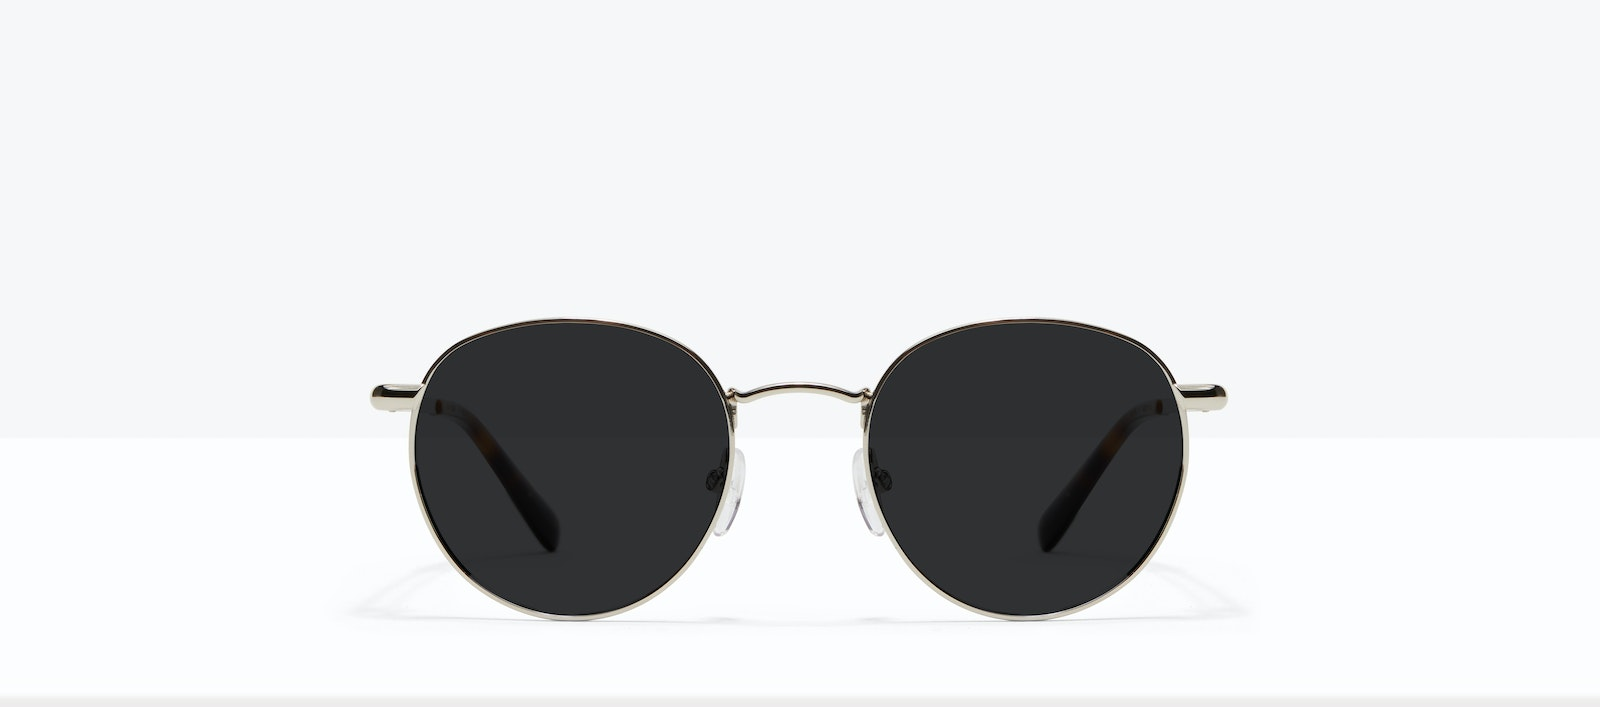 Affordable Fashion Glasses Round Sunglasses Men Women Dynasty M Silver Front